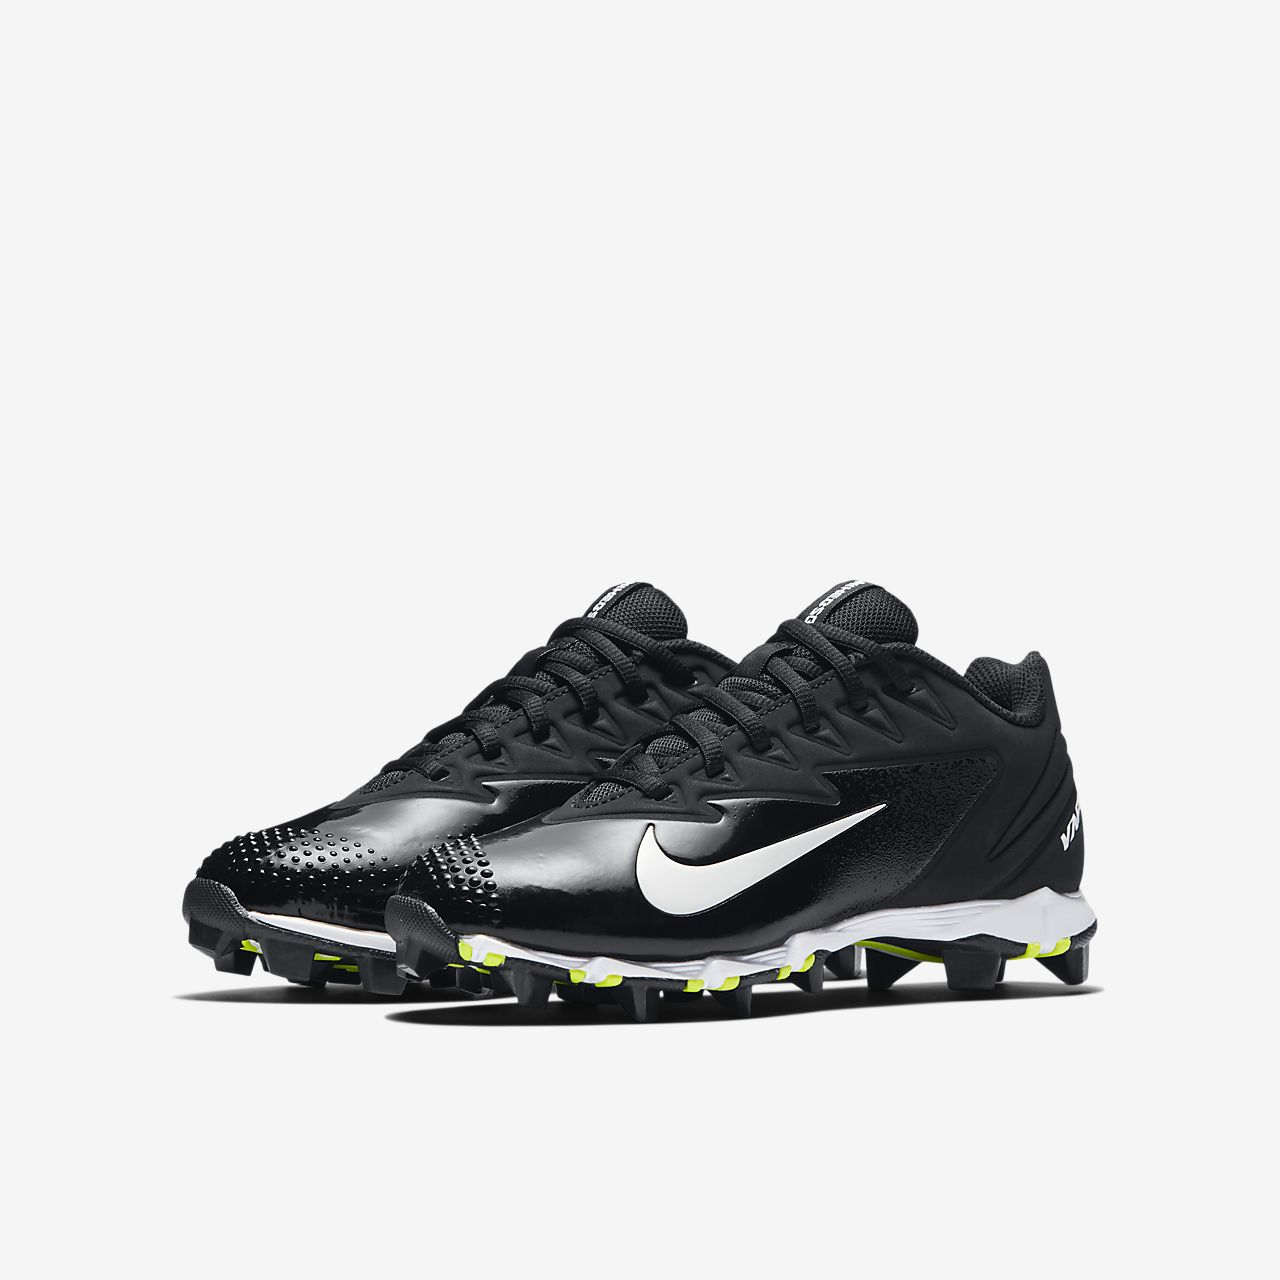 ... Nike Vapor Ultrafly Keystone (Wide) Little/Big Kids' Baseball Cleat